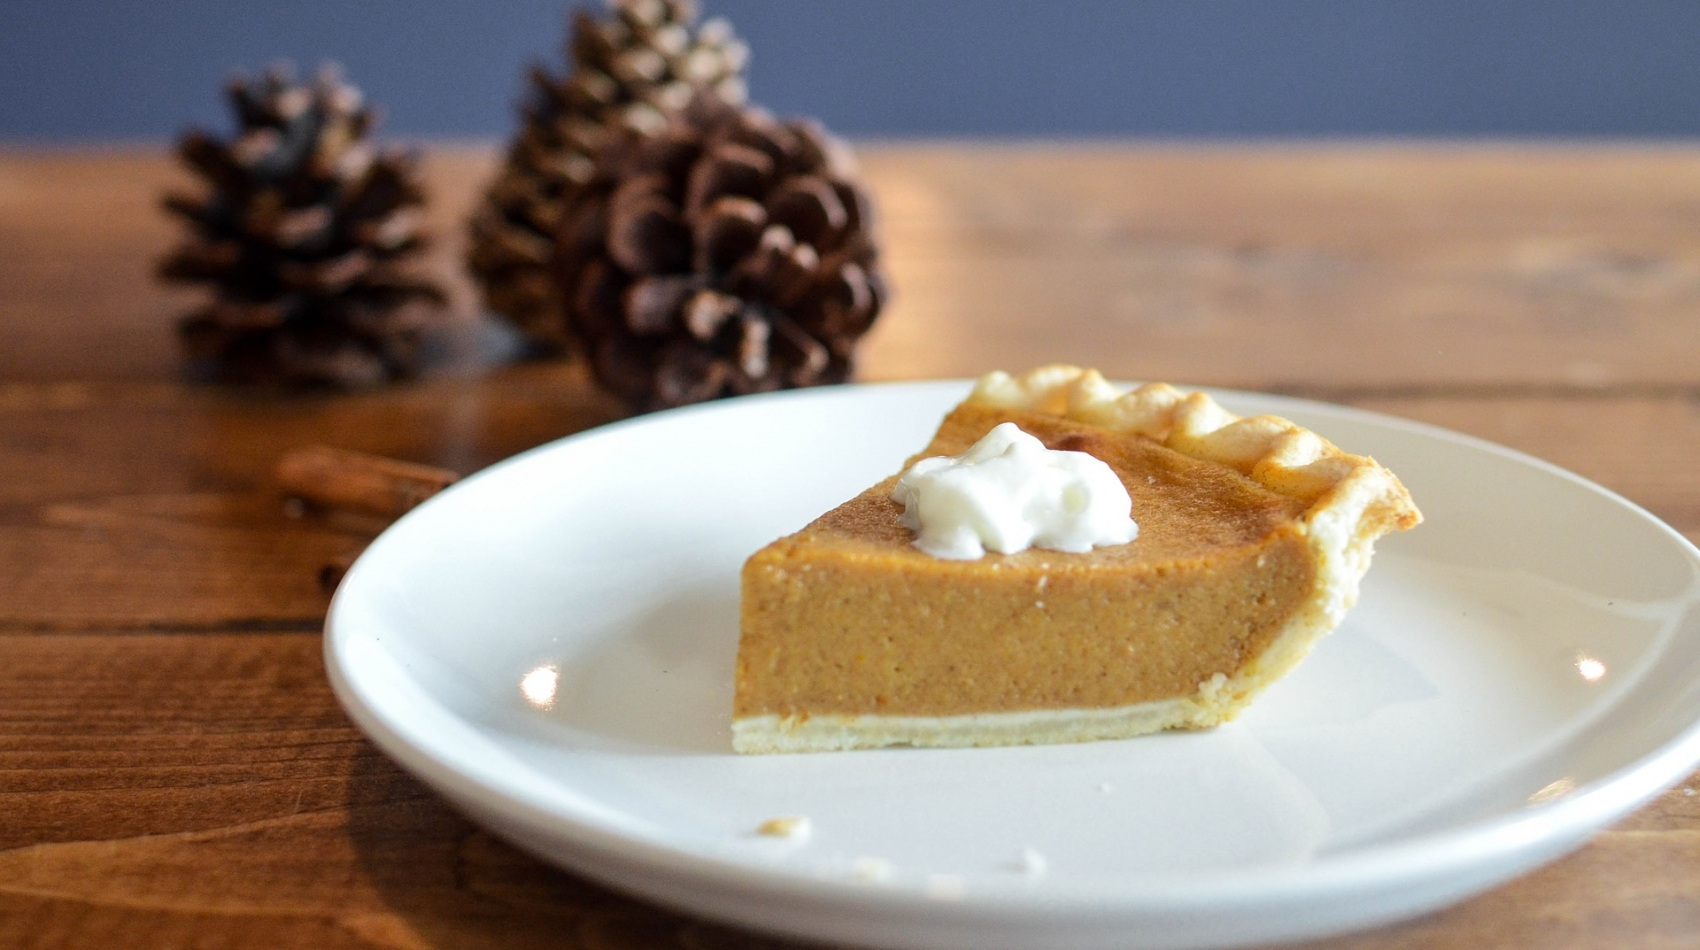 Winter season's butter pie recipe